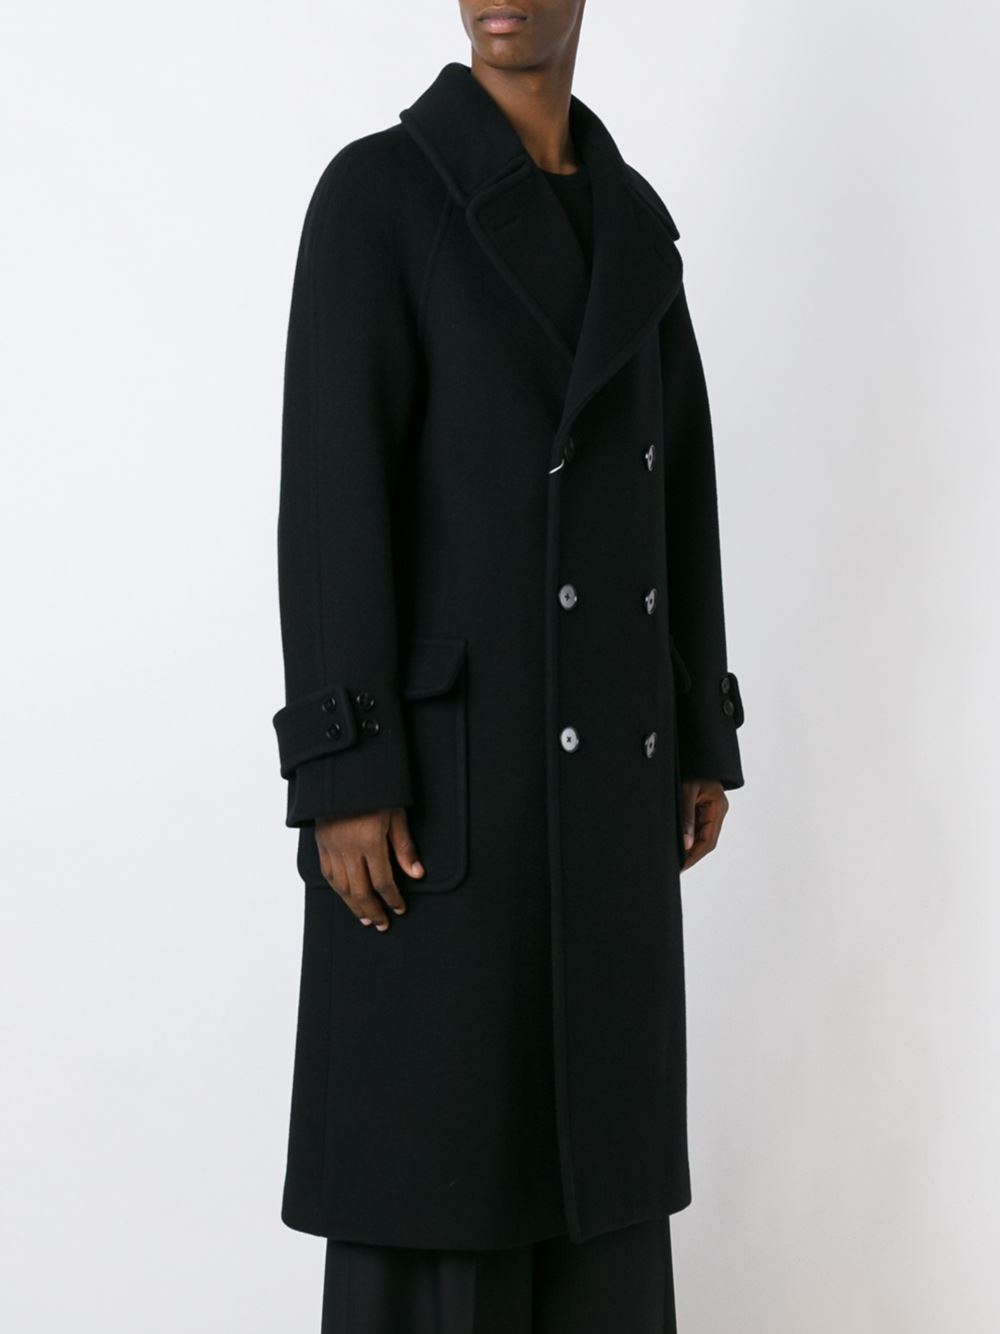 Free shipping and returns on women's peacoats at worldofweapons.tk Shop top brands like Calvin Klein, Burberry Brit and more, plus check out customer reviews.